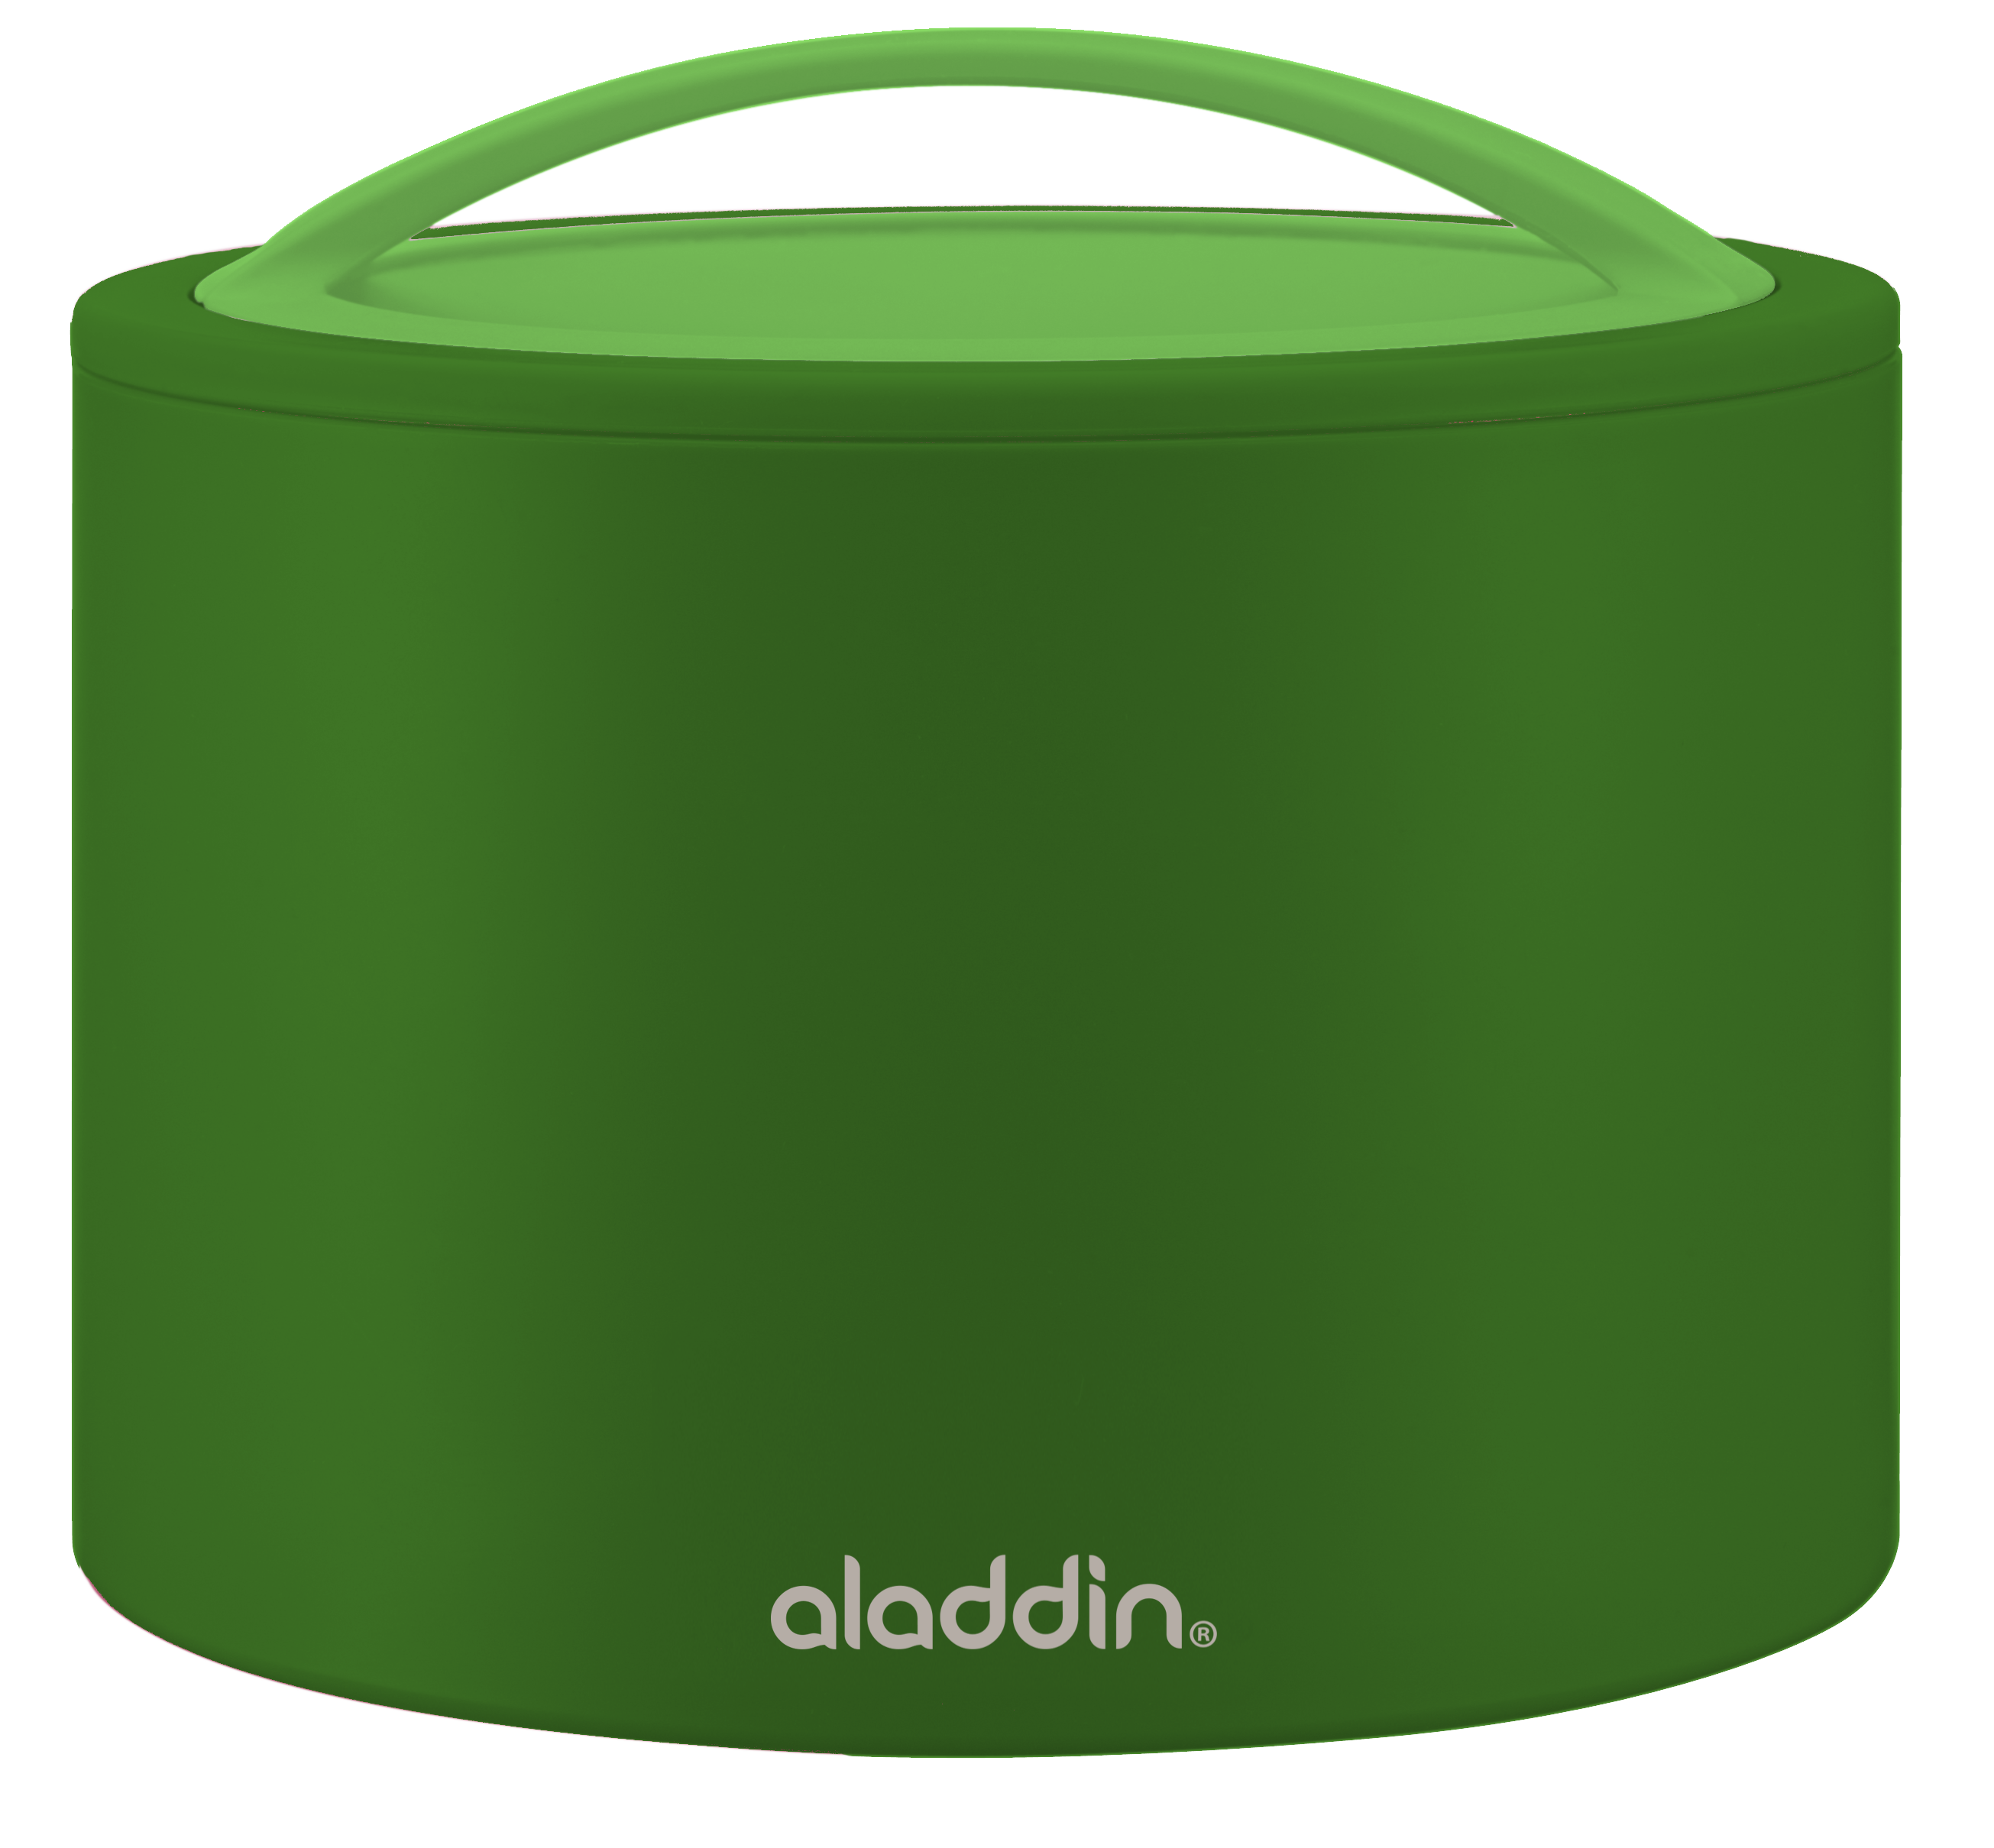 Pudełko Aladdin Bento Lunch Box 0.6L